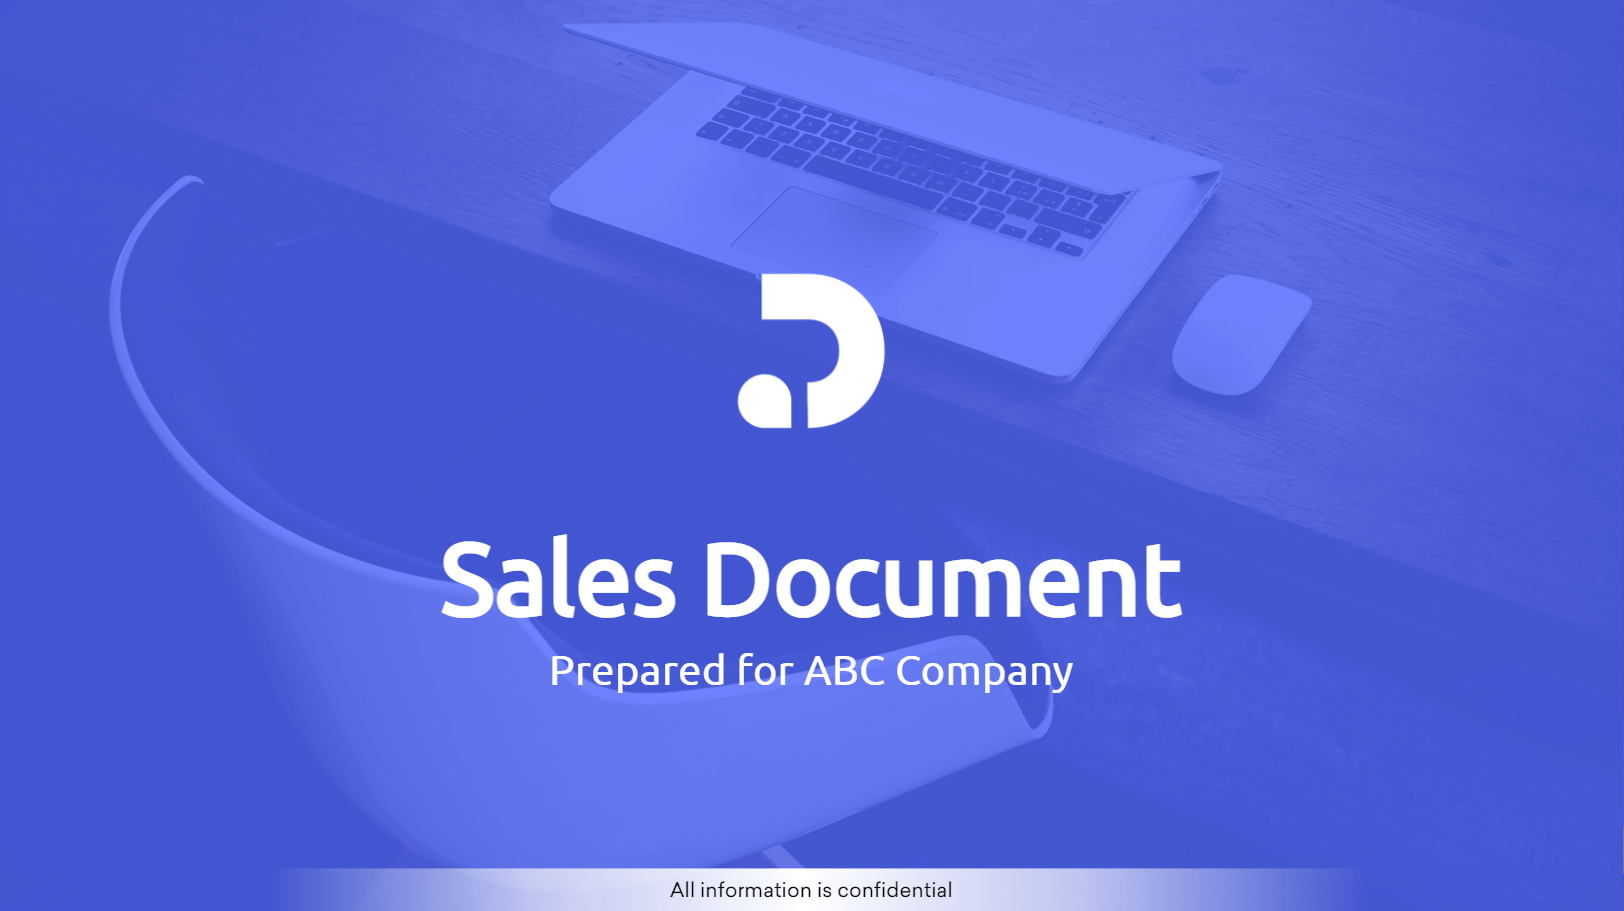 Sales documents are one of the critical documents salespeople use and optimize. This sales document template is prepared to kickstart a sales offer and take the stress out of sales teams. This template includes major bullet points of what a sales offer should have.